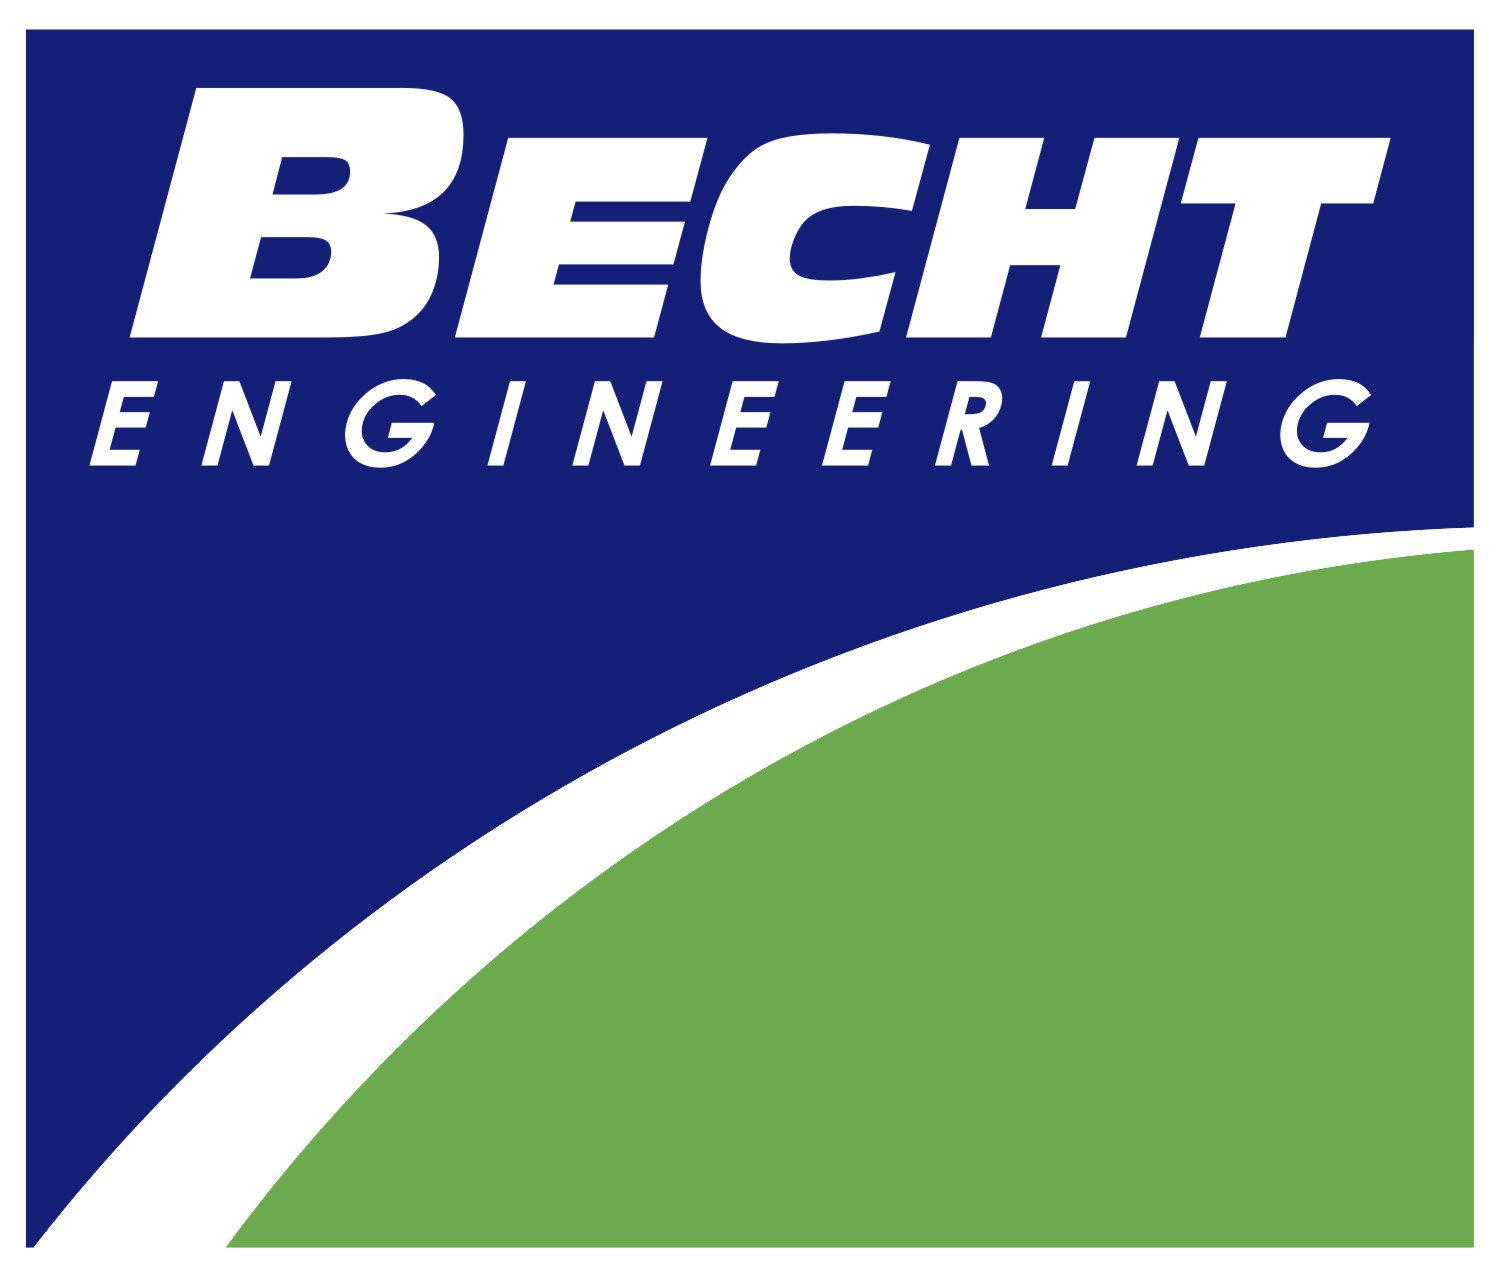 Becht Engineering Welcomes Roger Parakin to the Team as our Instrumentation, Electrical, Automation, and Controls Division Manager